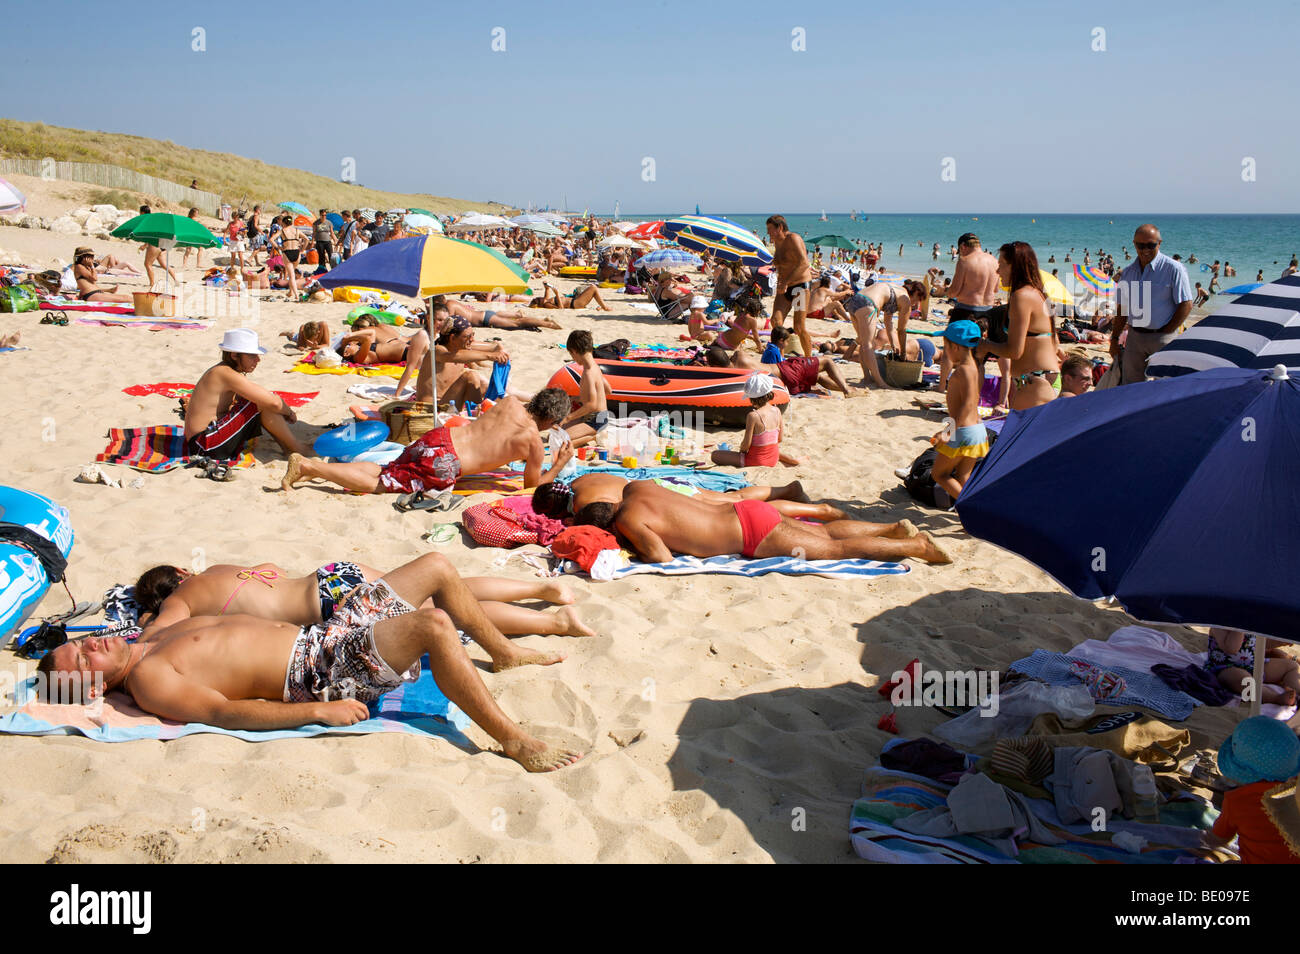 crowded beach Le Bois Plage ile de re France Stock Photo, Royalty Free Image 25822818 Alamy # Ile De Ré Bois Plage